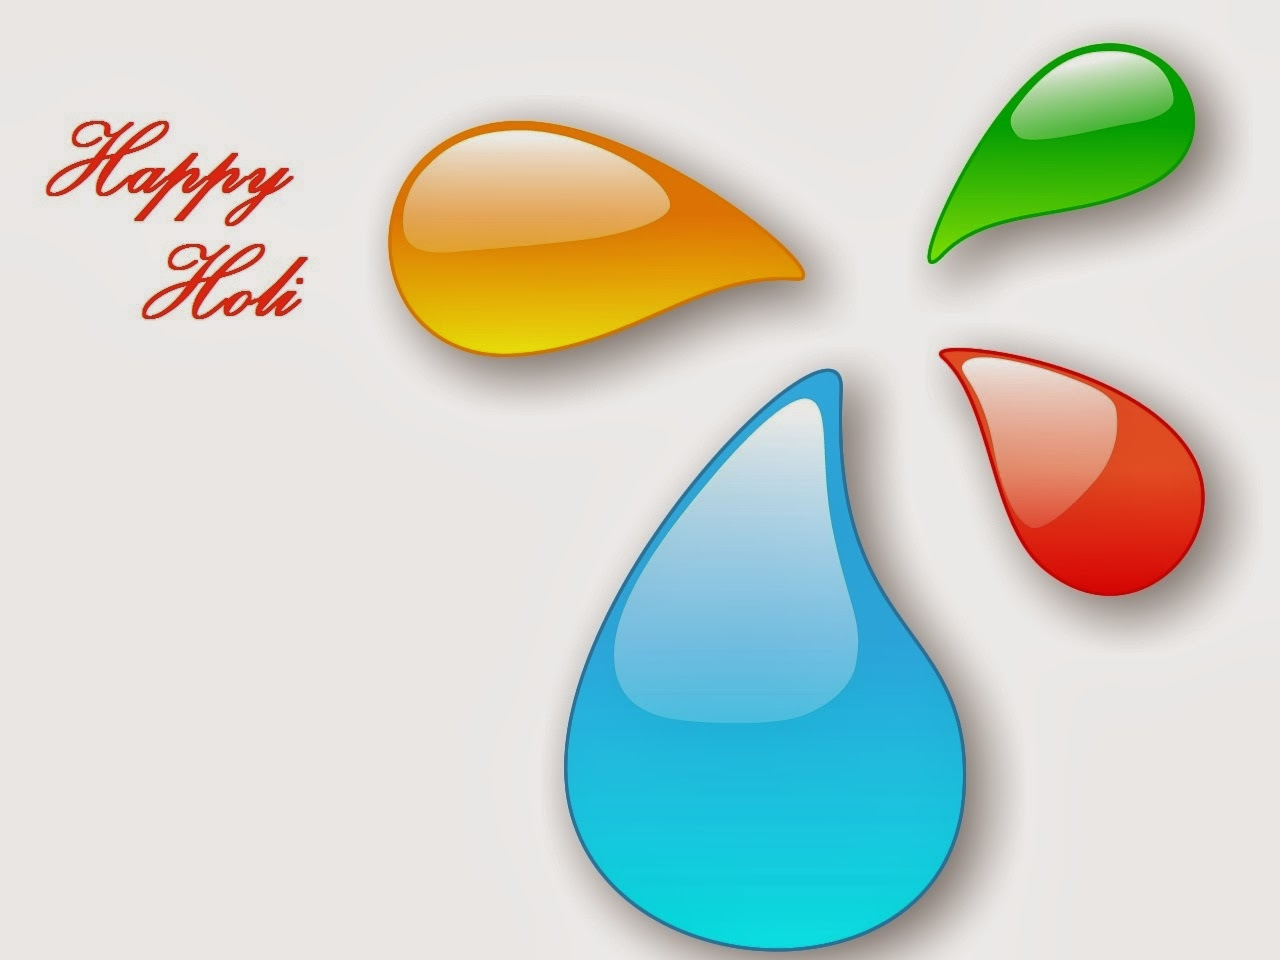 Happy Holi 2017 SMS Messages In English 2017